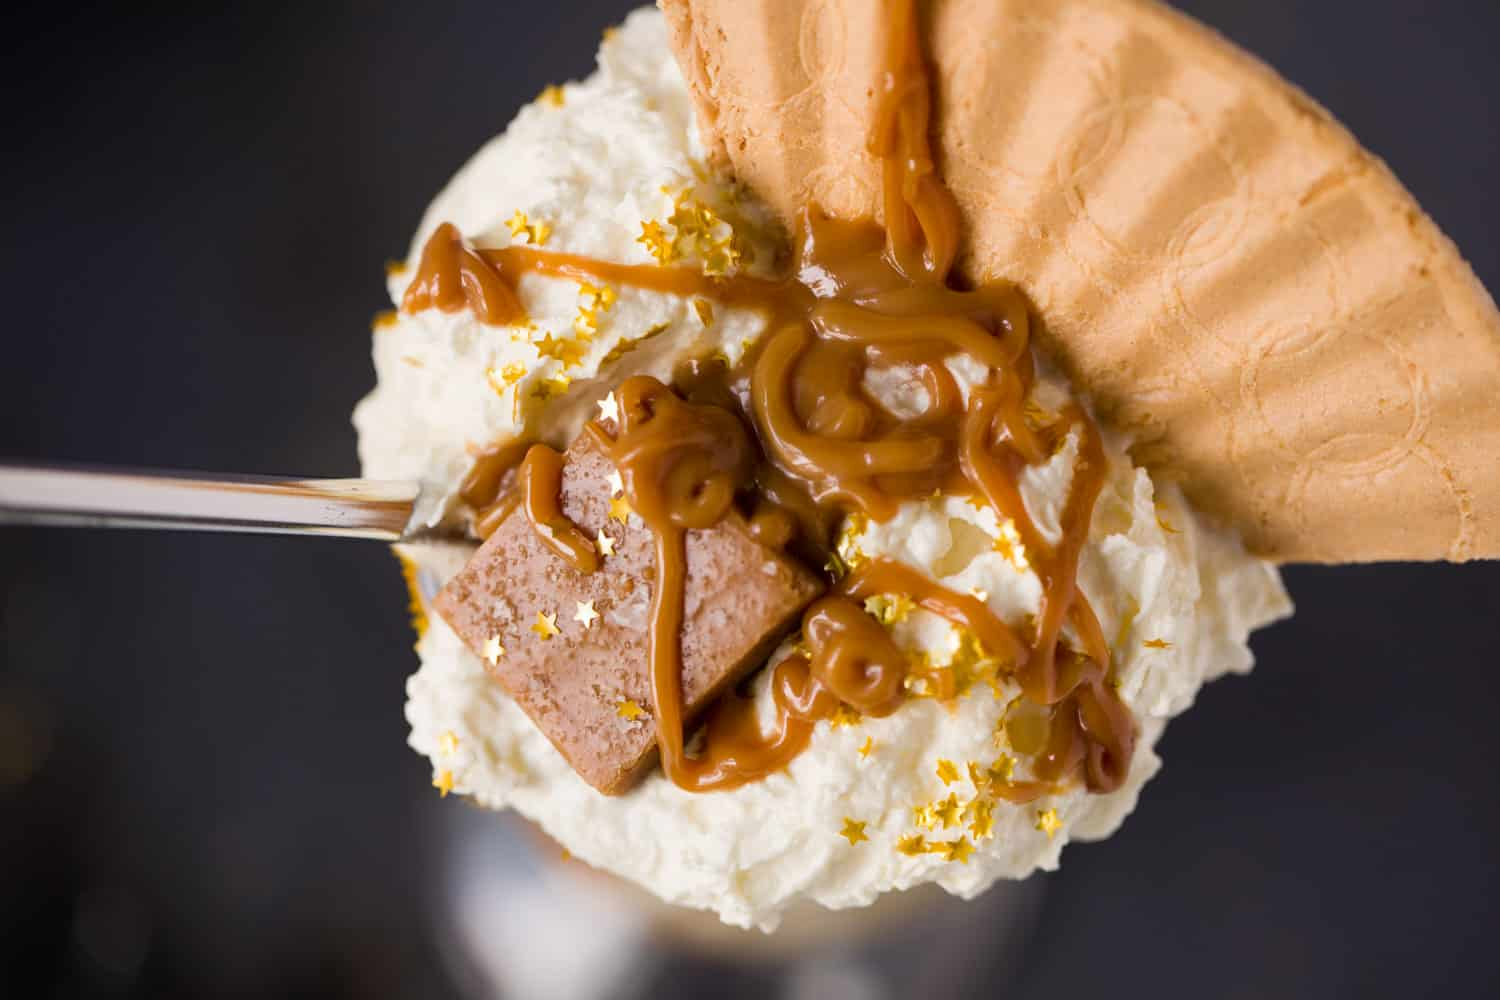 Overhead view of a milkshake in a glass, there is whipped cream on top, a wafer, salted caramel sauce and a piece of fudge